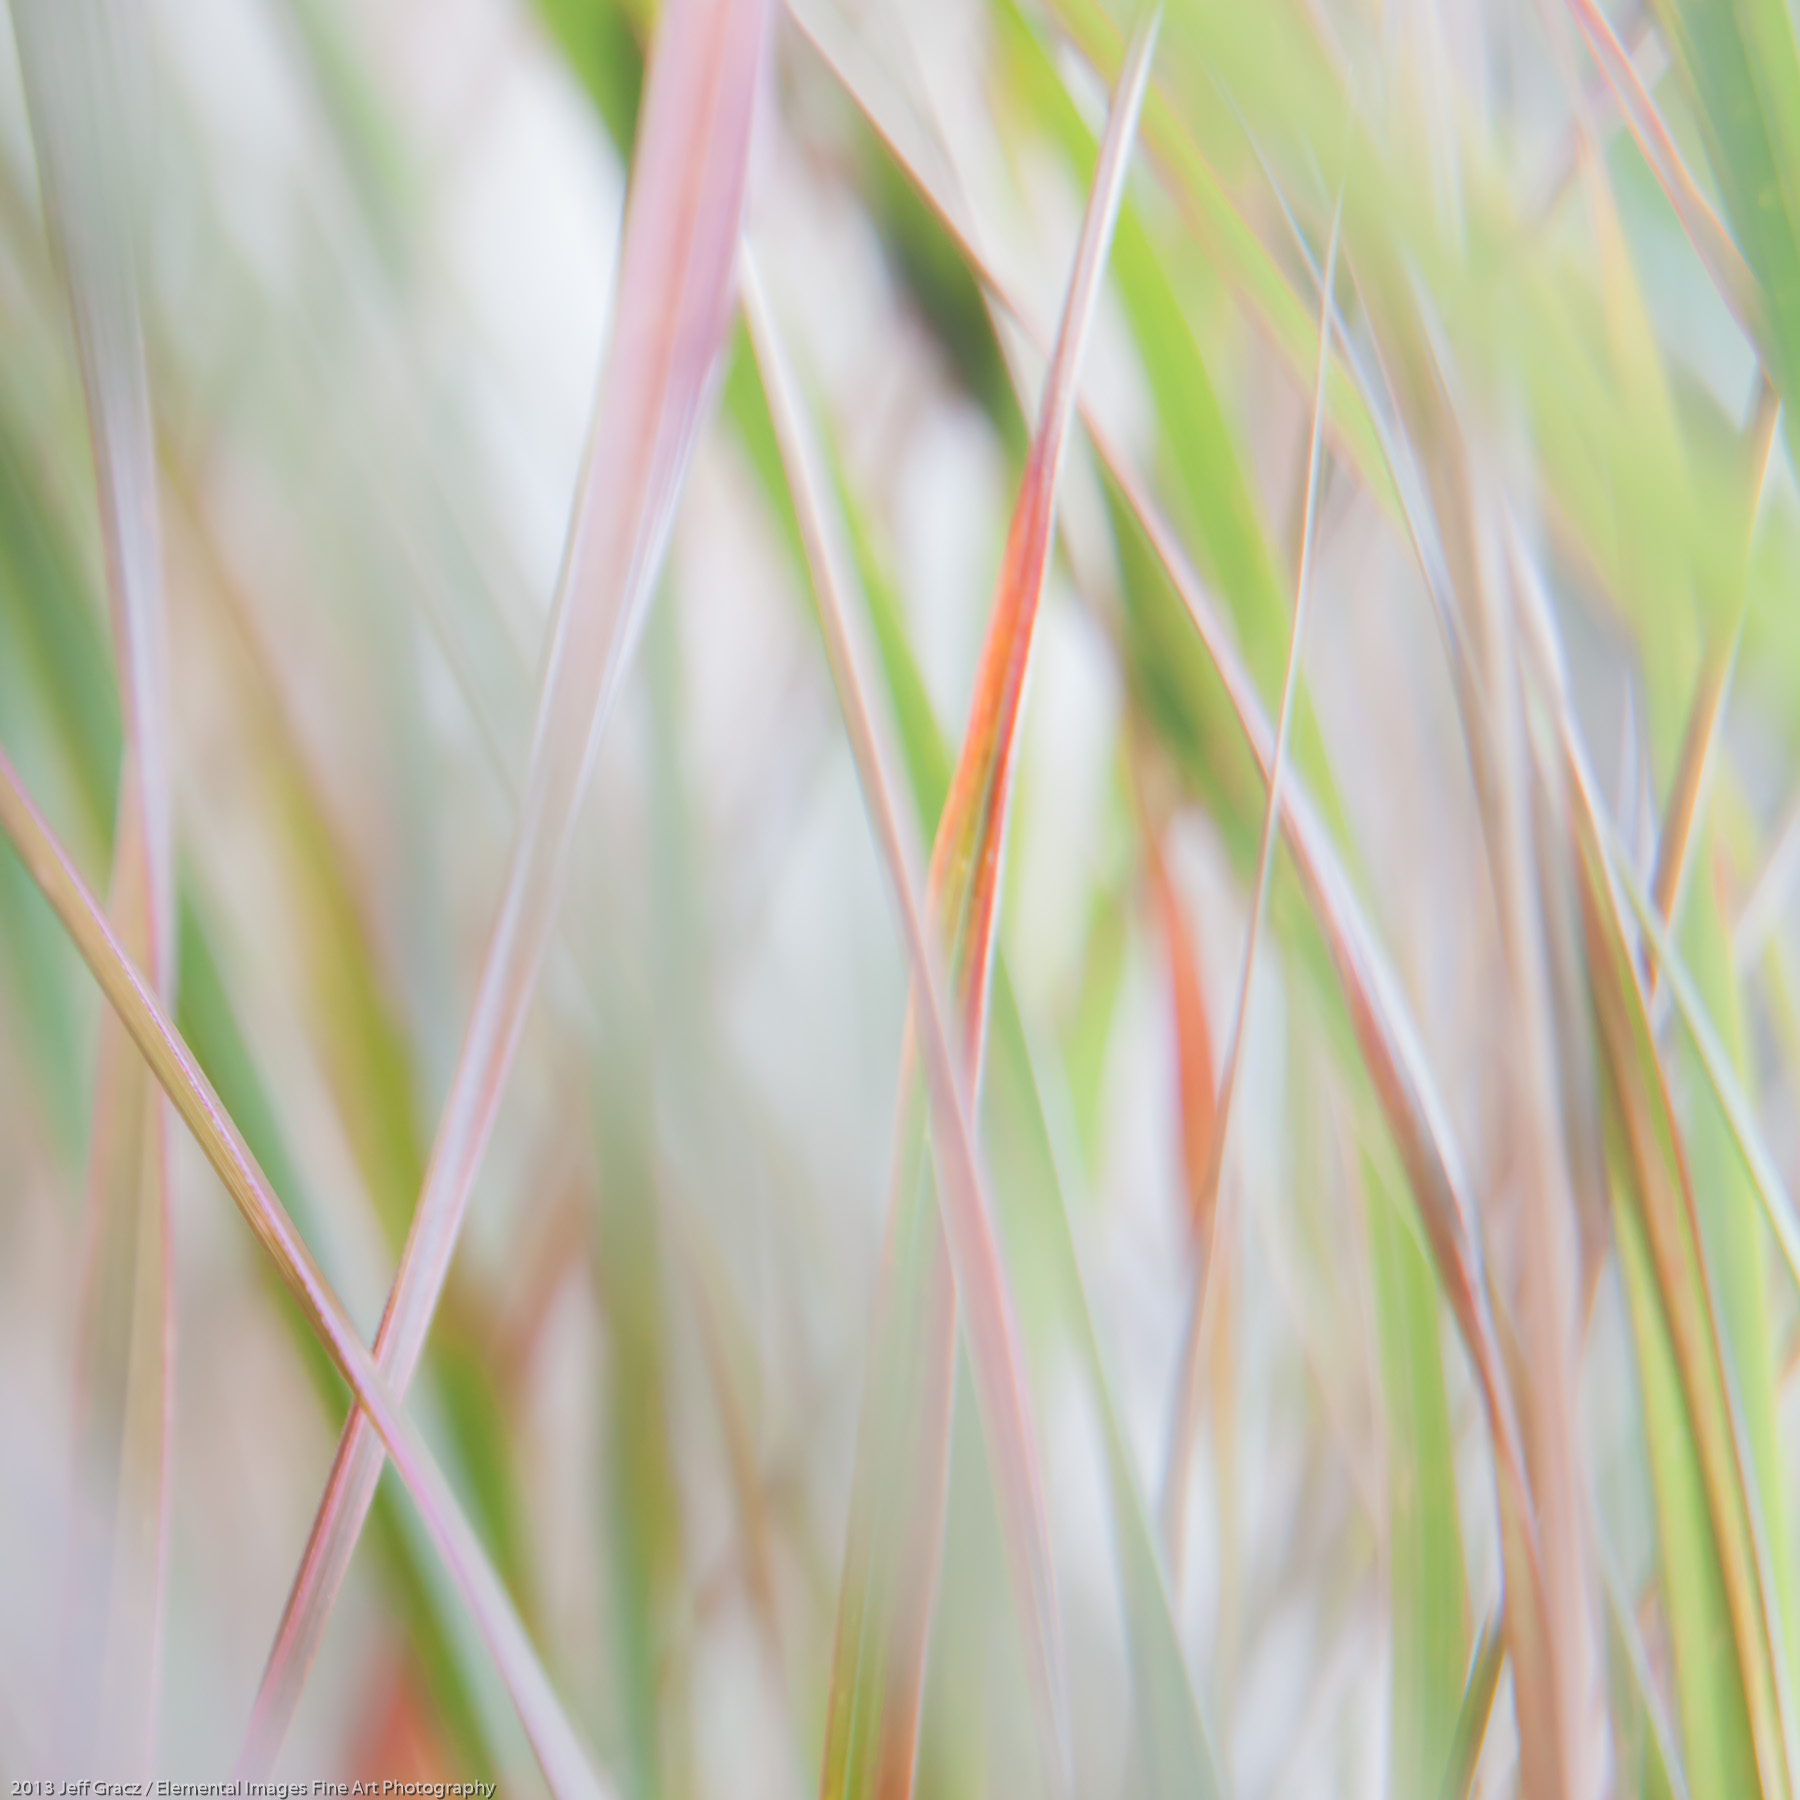 Grasses XLIX   Portland   OR   USA - © 2013 Jeff Gracz / Elemental Images Fine Art Photography - All Rights Reserved Worldwide